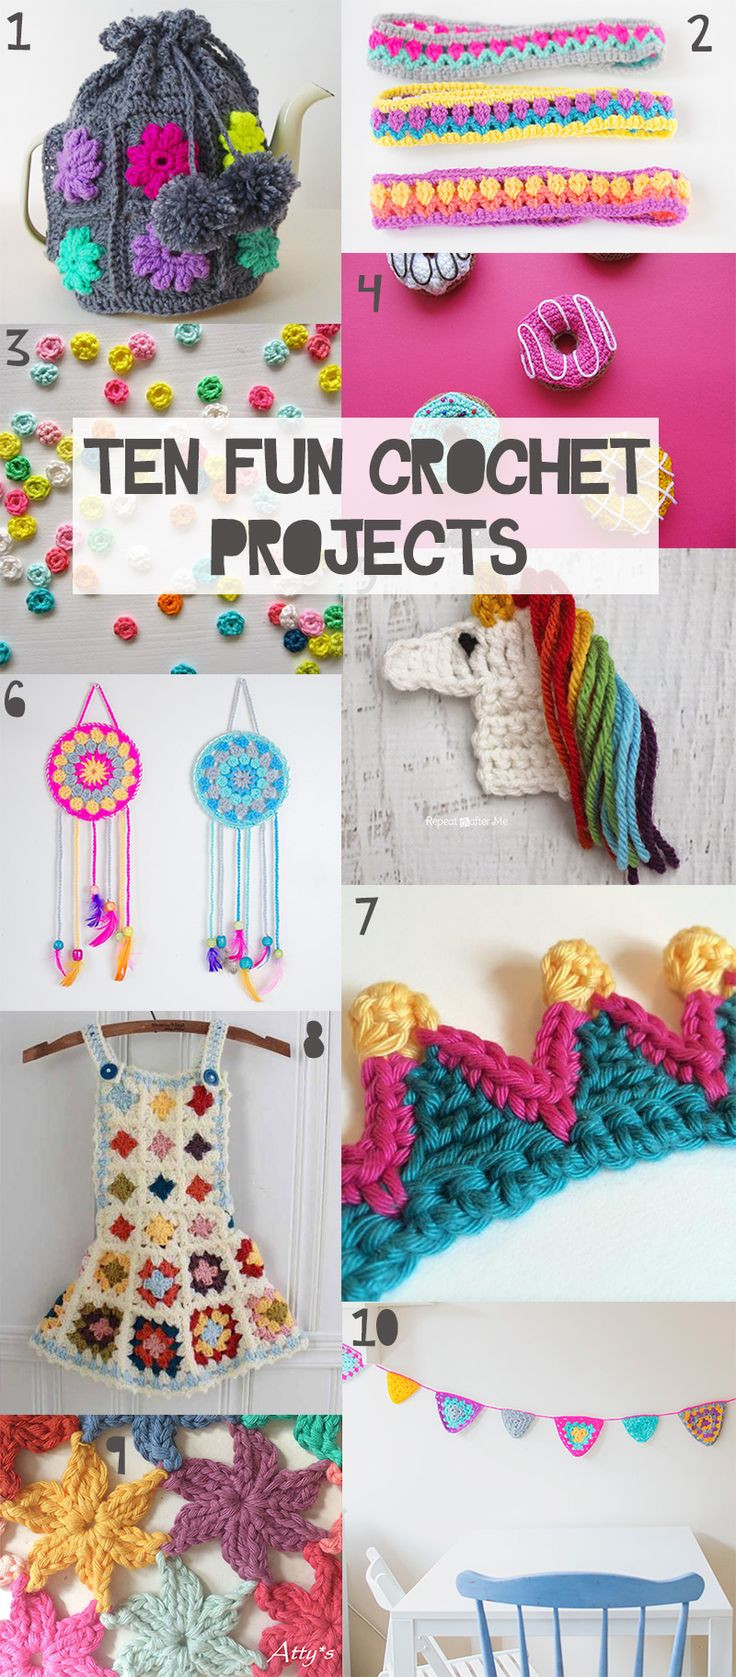 Inspirational Easy Fast Crochet Patterns Crochet and Knit Quick and Easy Crochet Patterns for Beginners Of Awesome 48 Photos Quick and Easy Crochet Patterns for Beginners